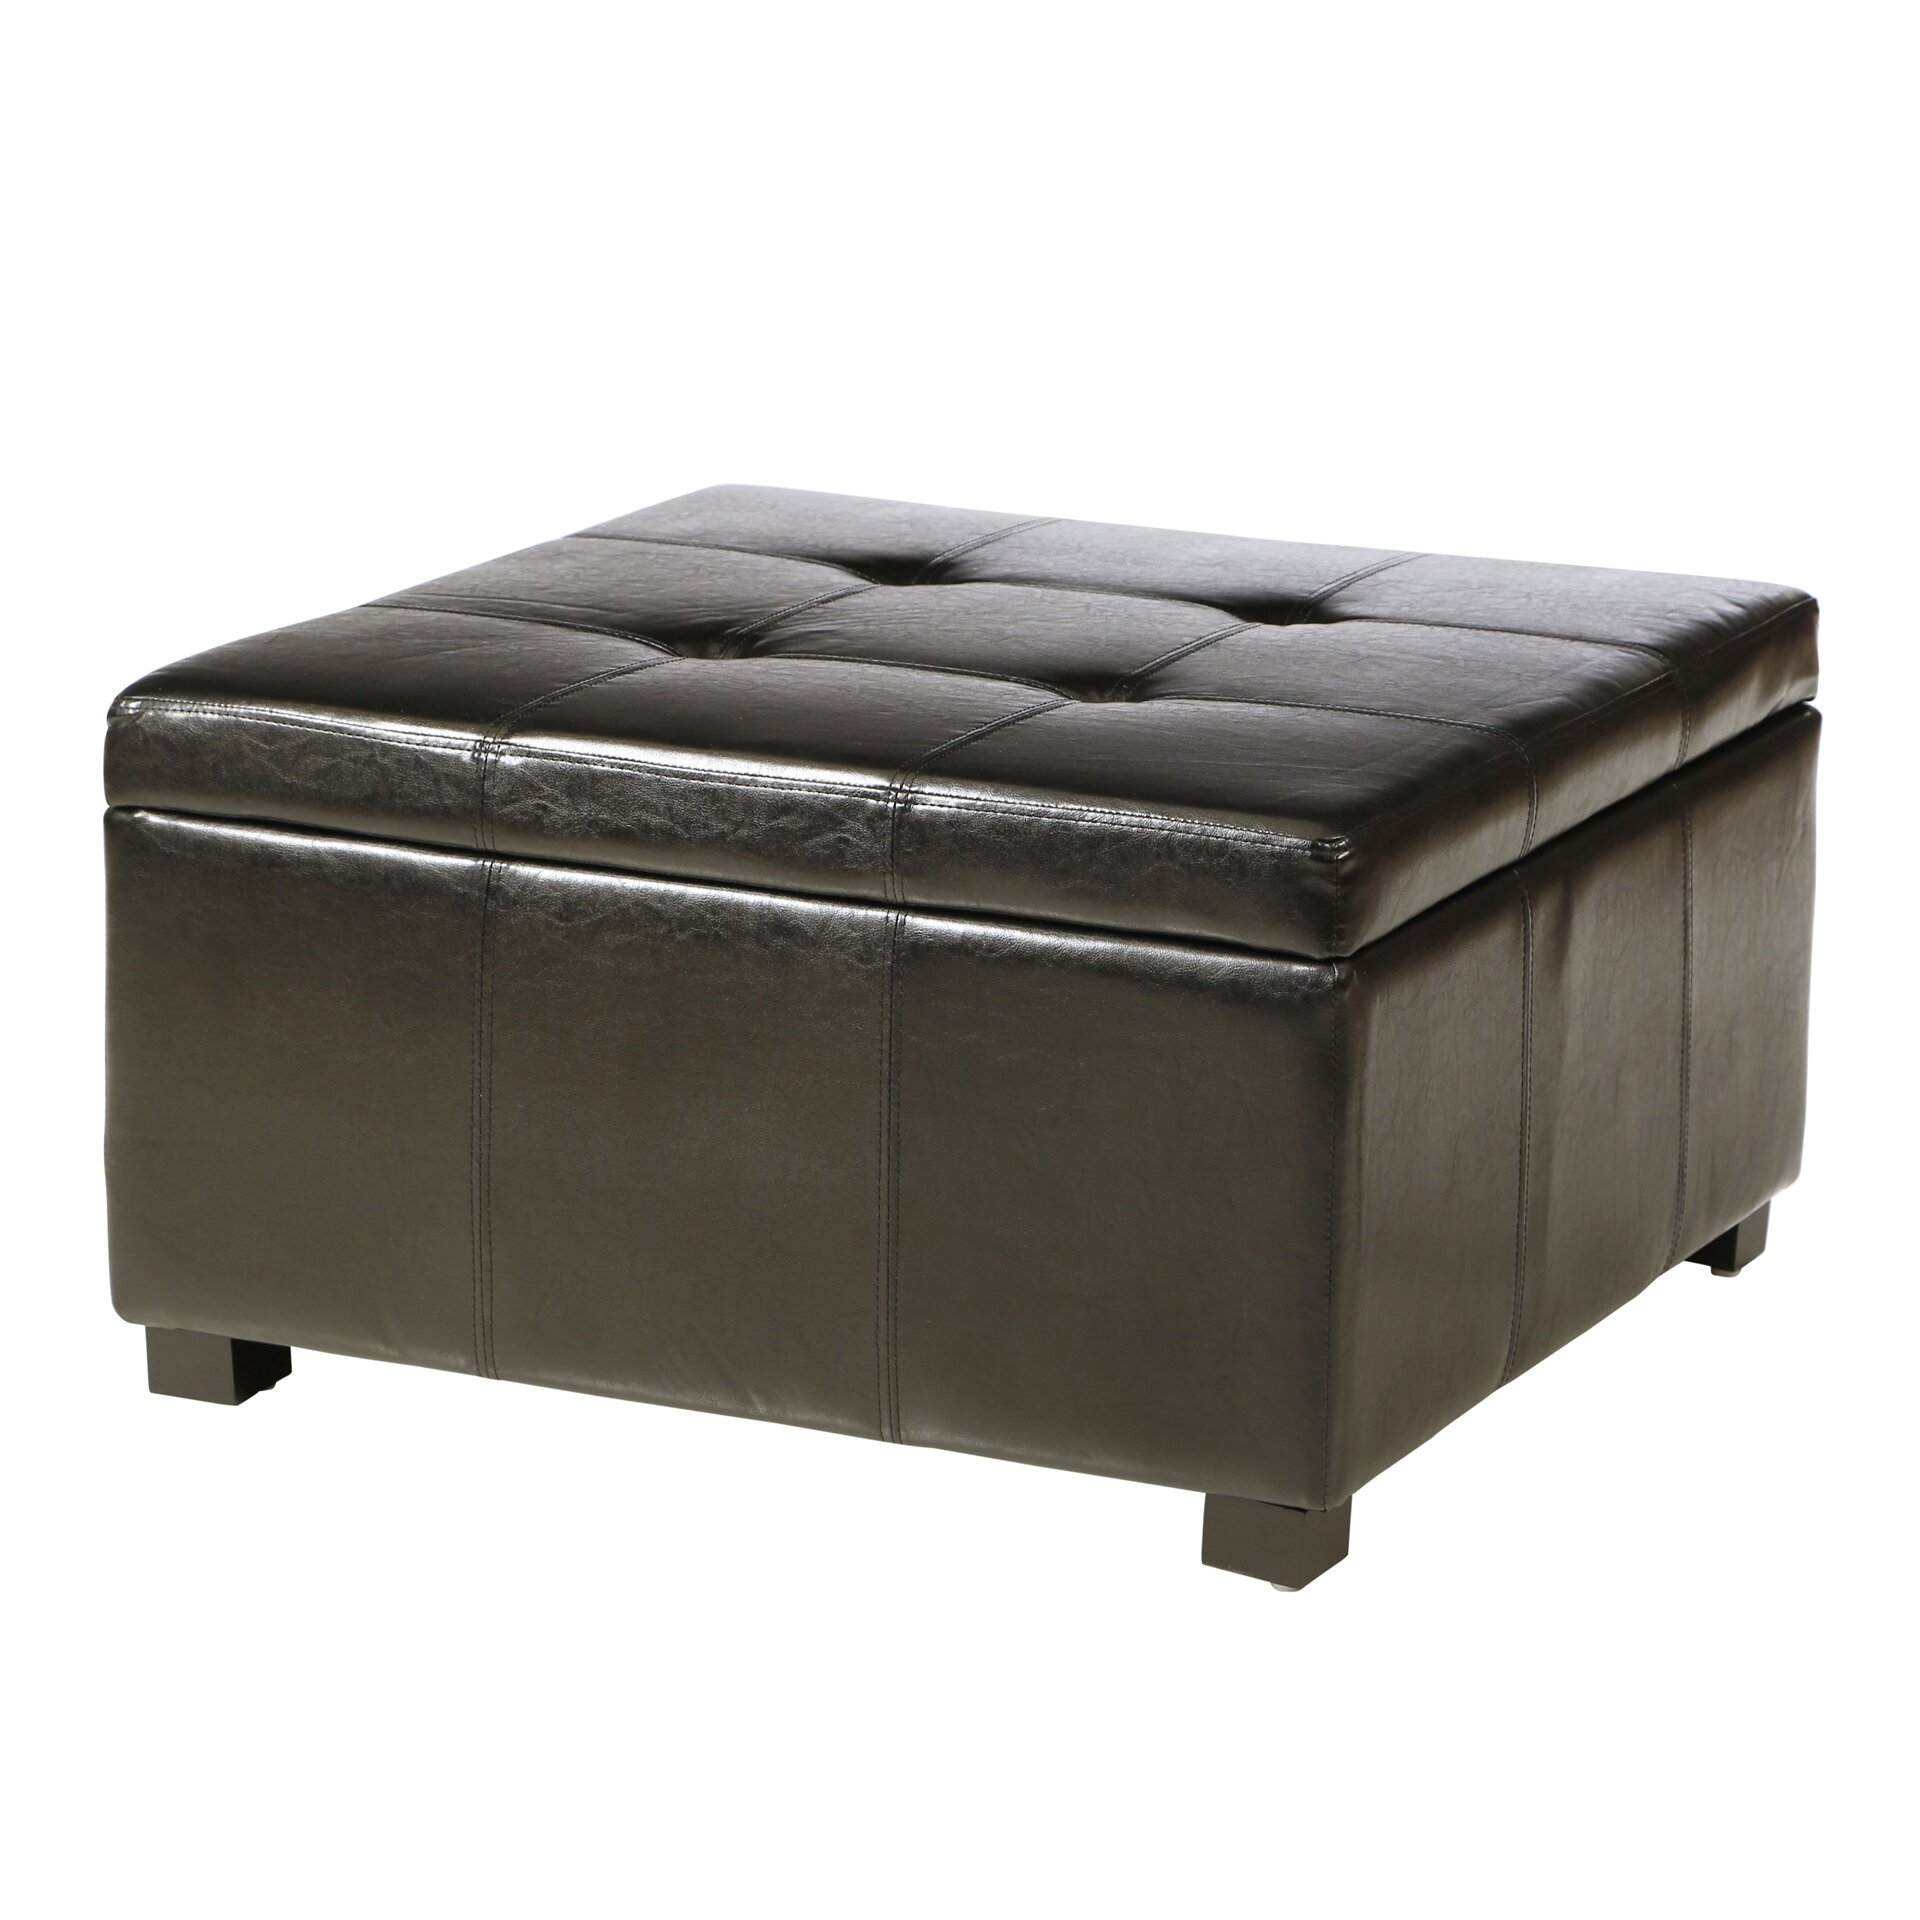 Kitchener Surplus Furniture Alcott Hill Cottenham Storage Ottoman Reviews Wayfair